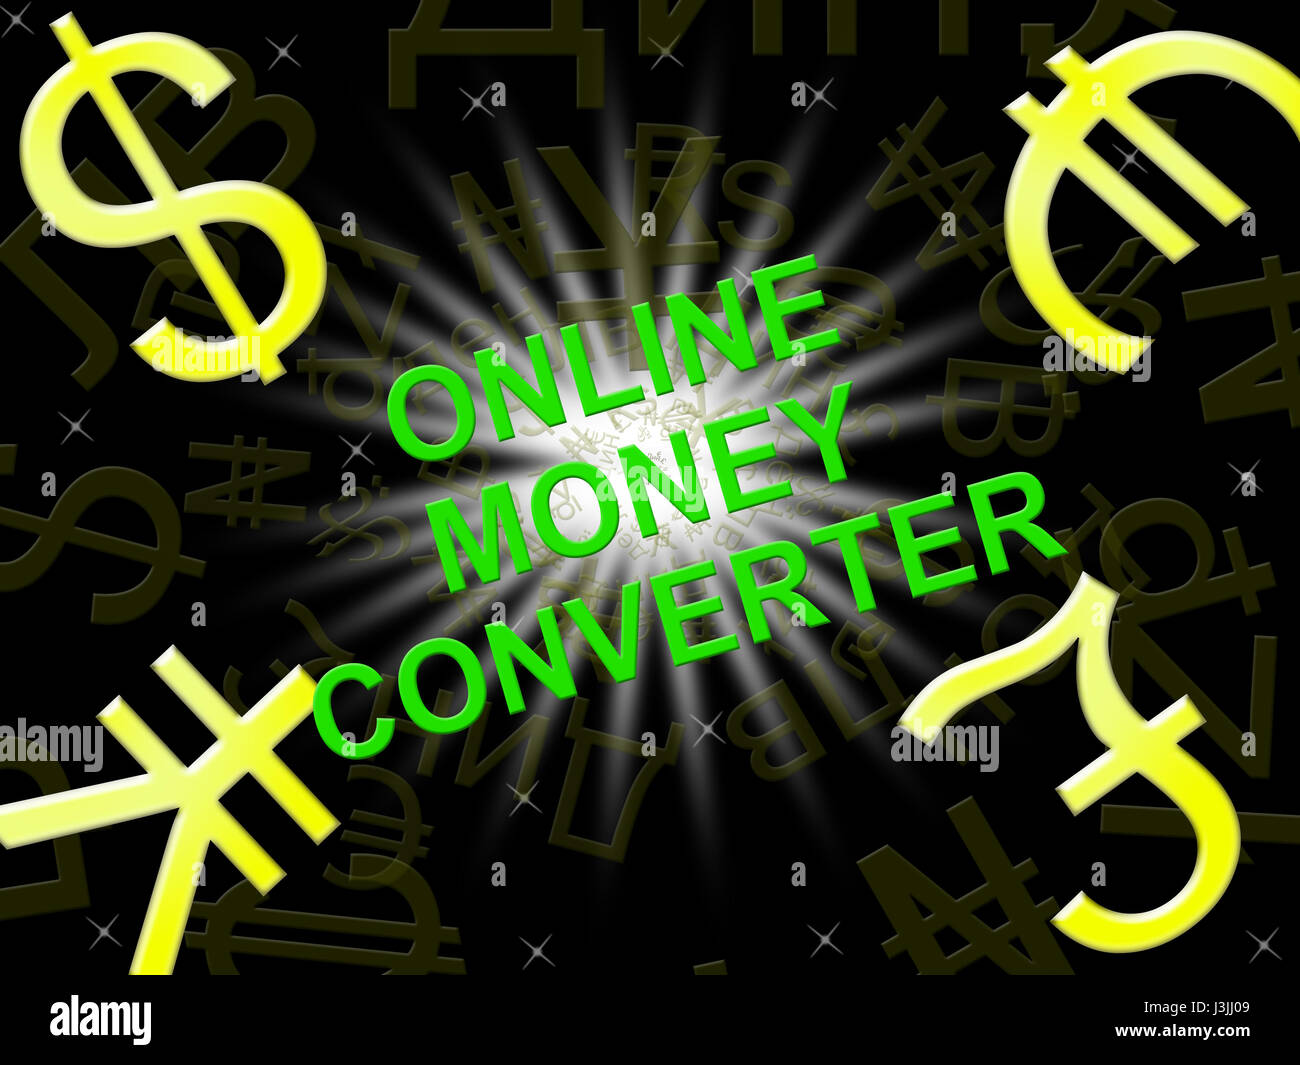 Online Money Converter Symbols Means Converting Cash 3d Illustration